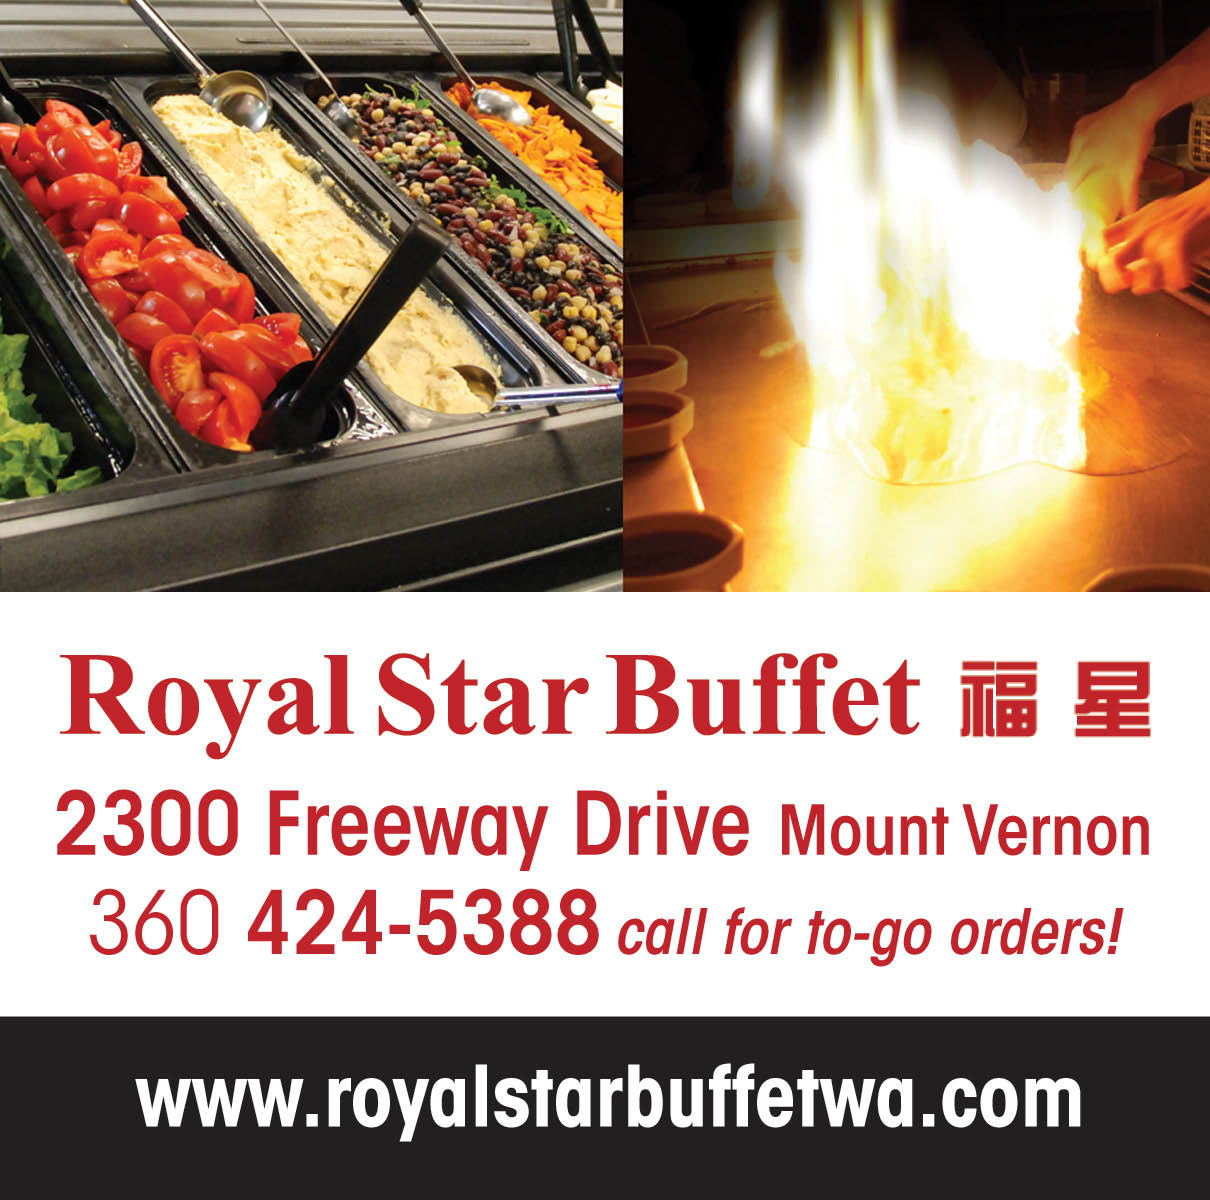 Royal Star Buffet logo over-layered on pictures of their buffet and Mongolian Grill with location directions, phone number and website.